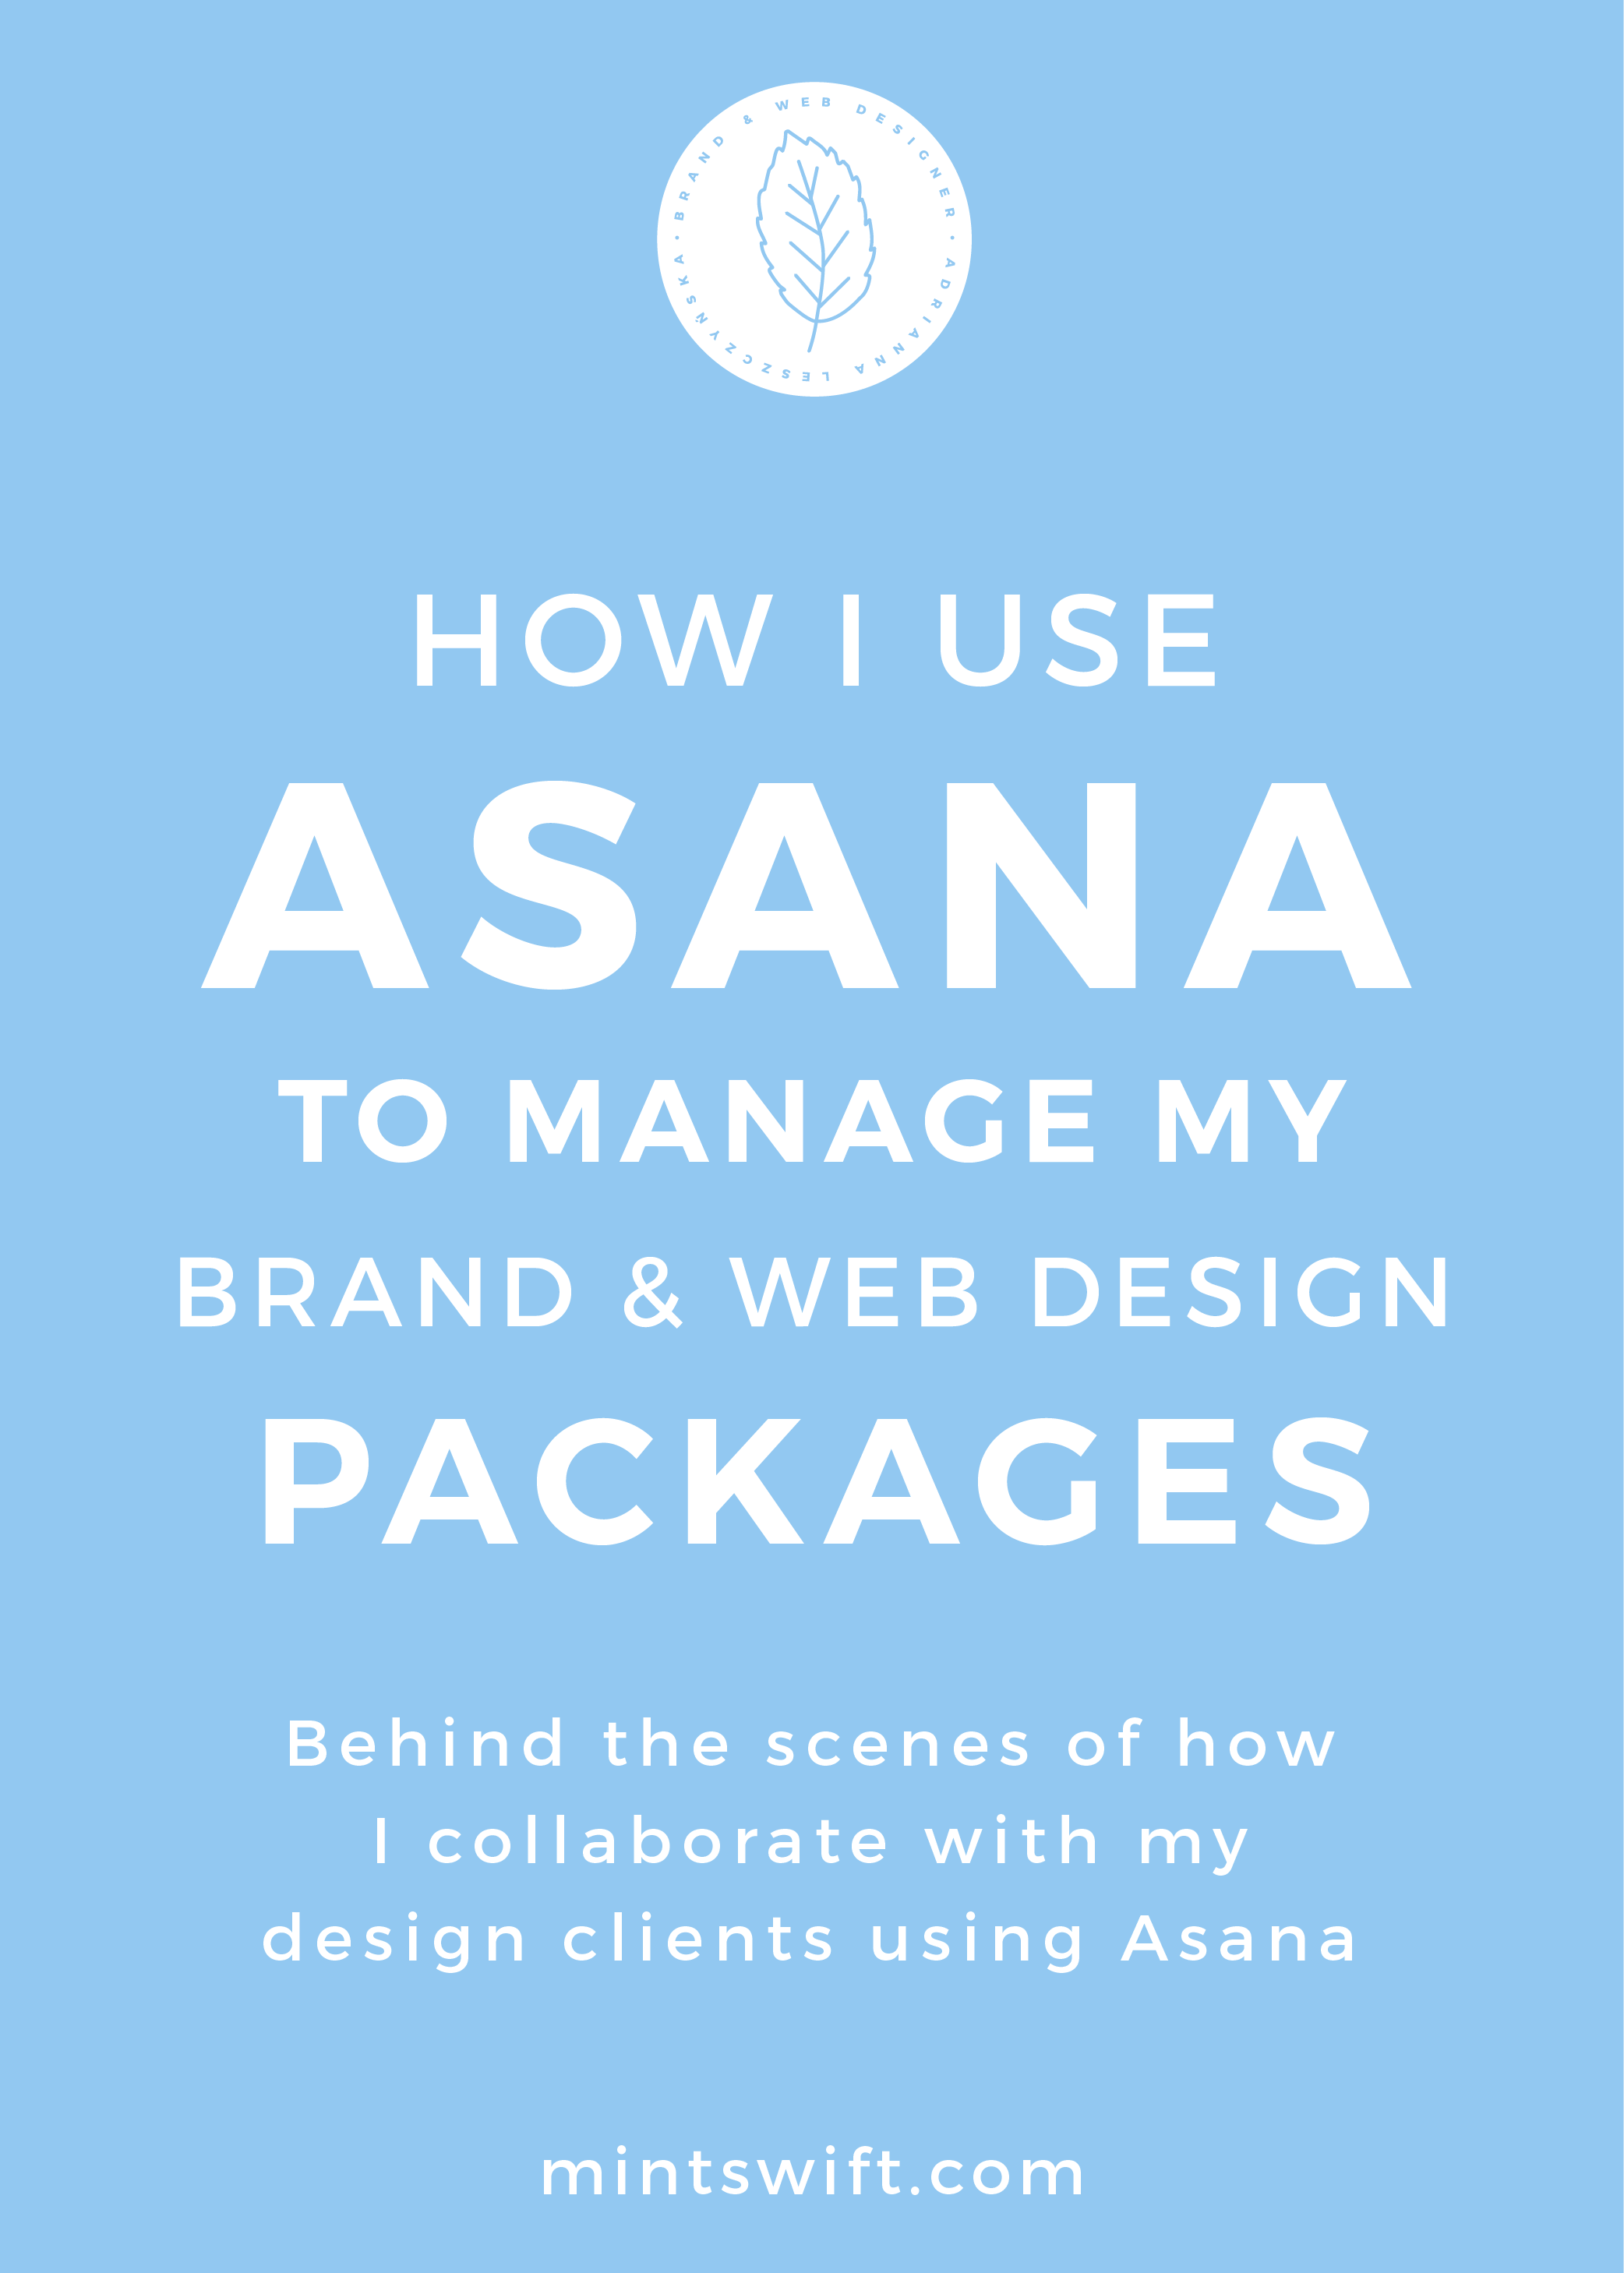 How I Use Asana To Manage My Brand & Web Design Packages. Behind The Scenes of How I Collaborate With My Design Clients Using Asana - MintSwift